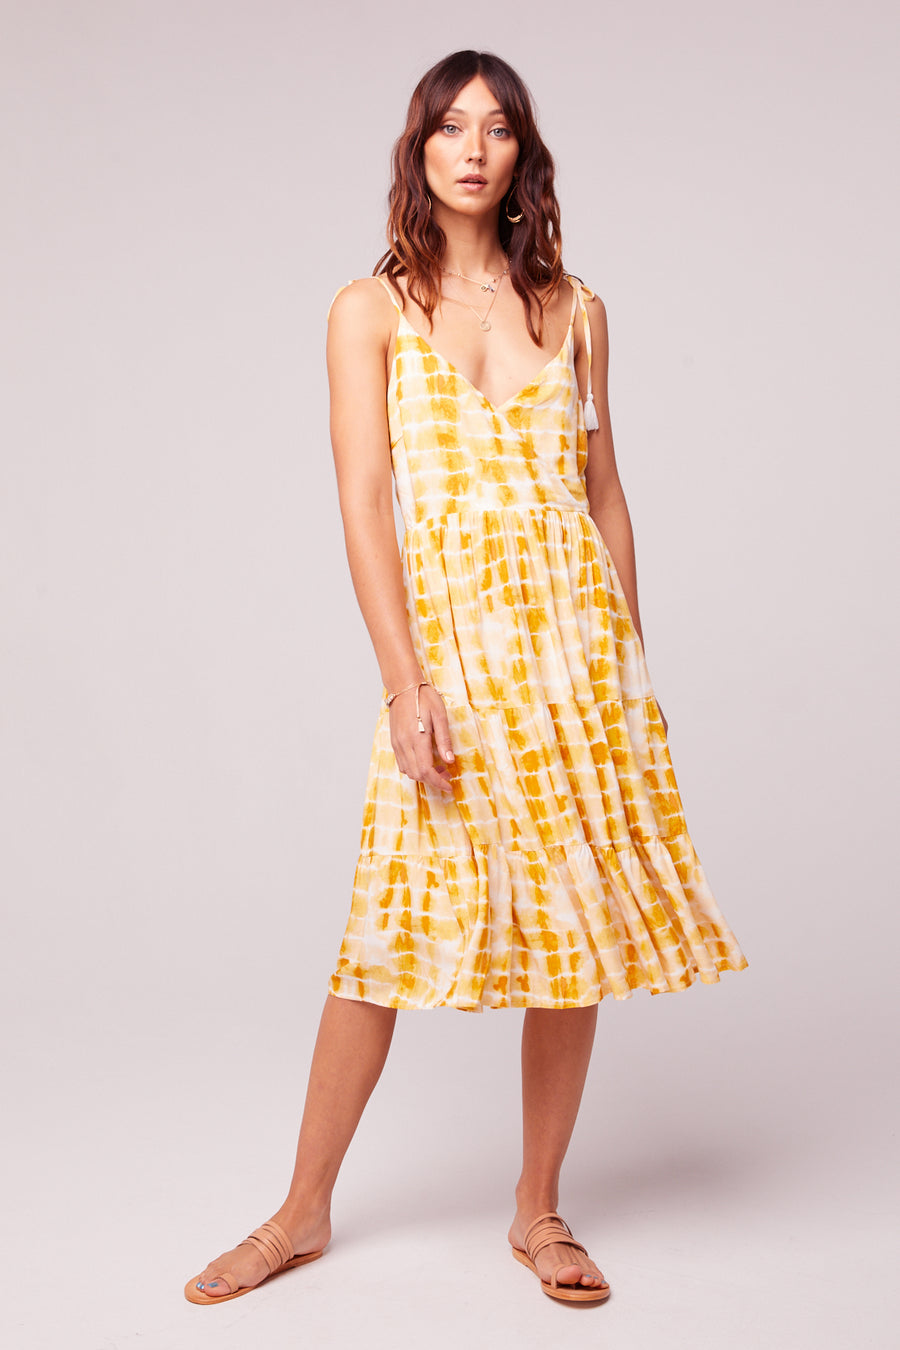 Get Me Gold Tassel Tie Dye Dress Master